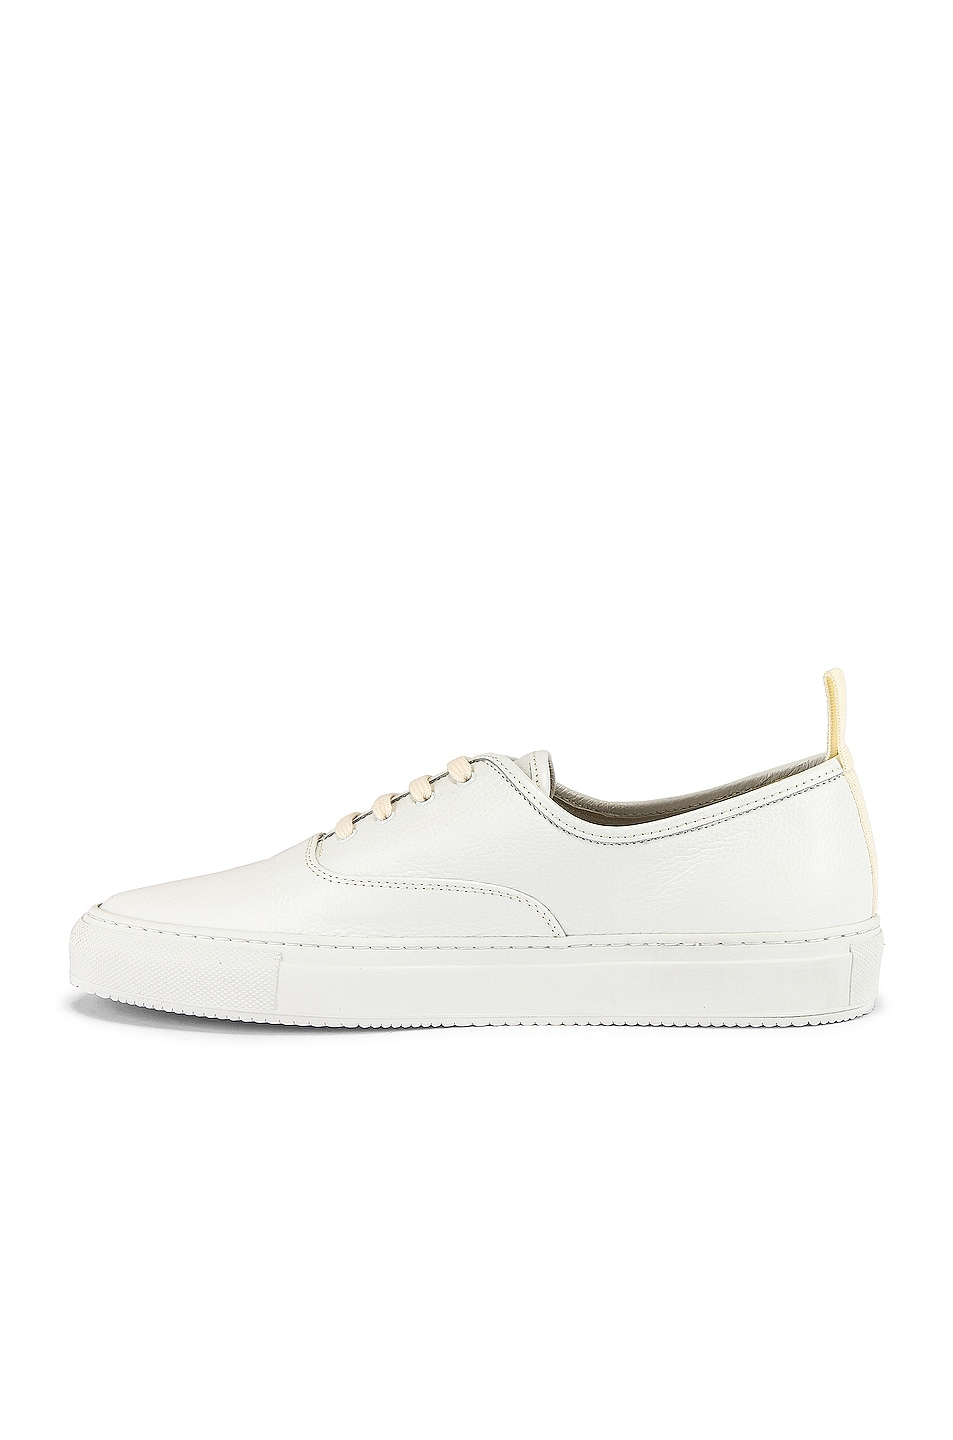 Image 5 of Common Projects Four Hole in Leather Low Sneaker in White